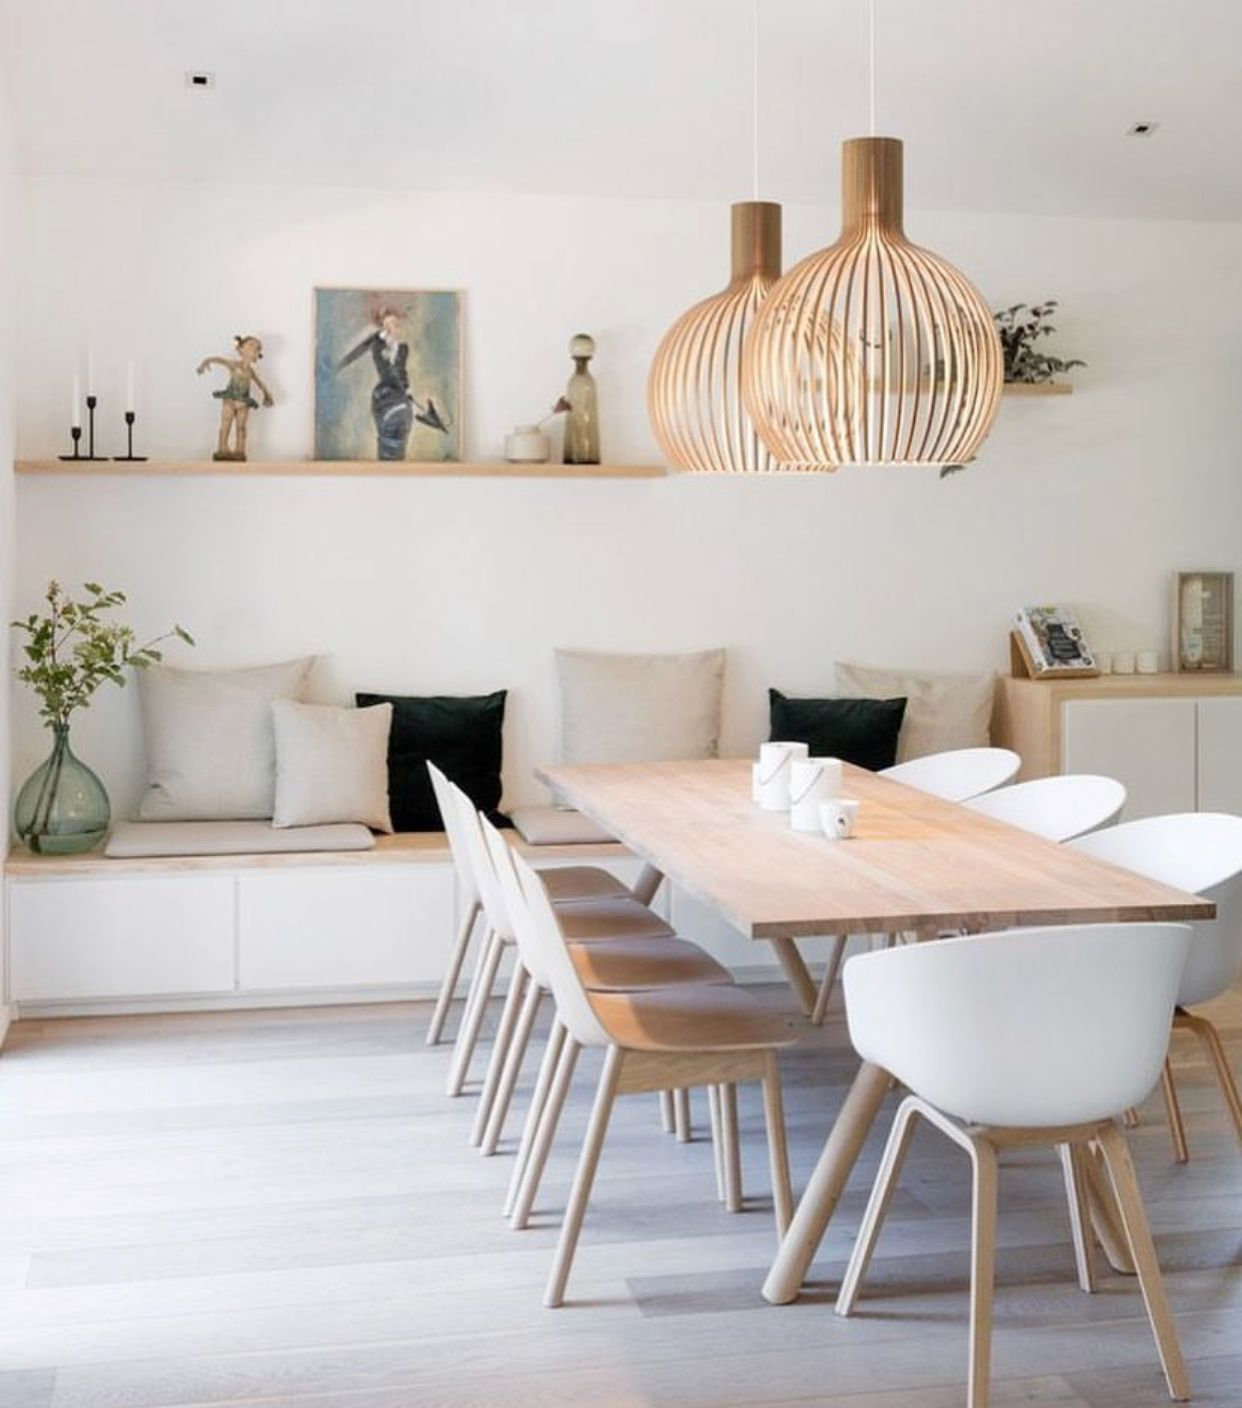 Brilliant furniture design ideas with wood pallets 11